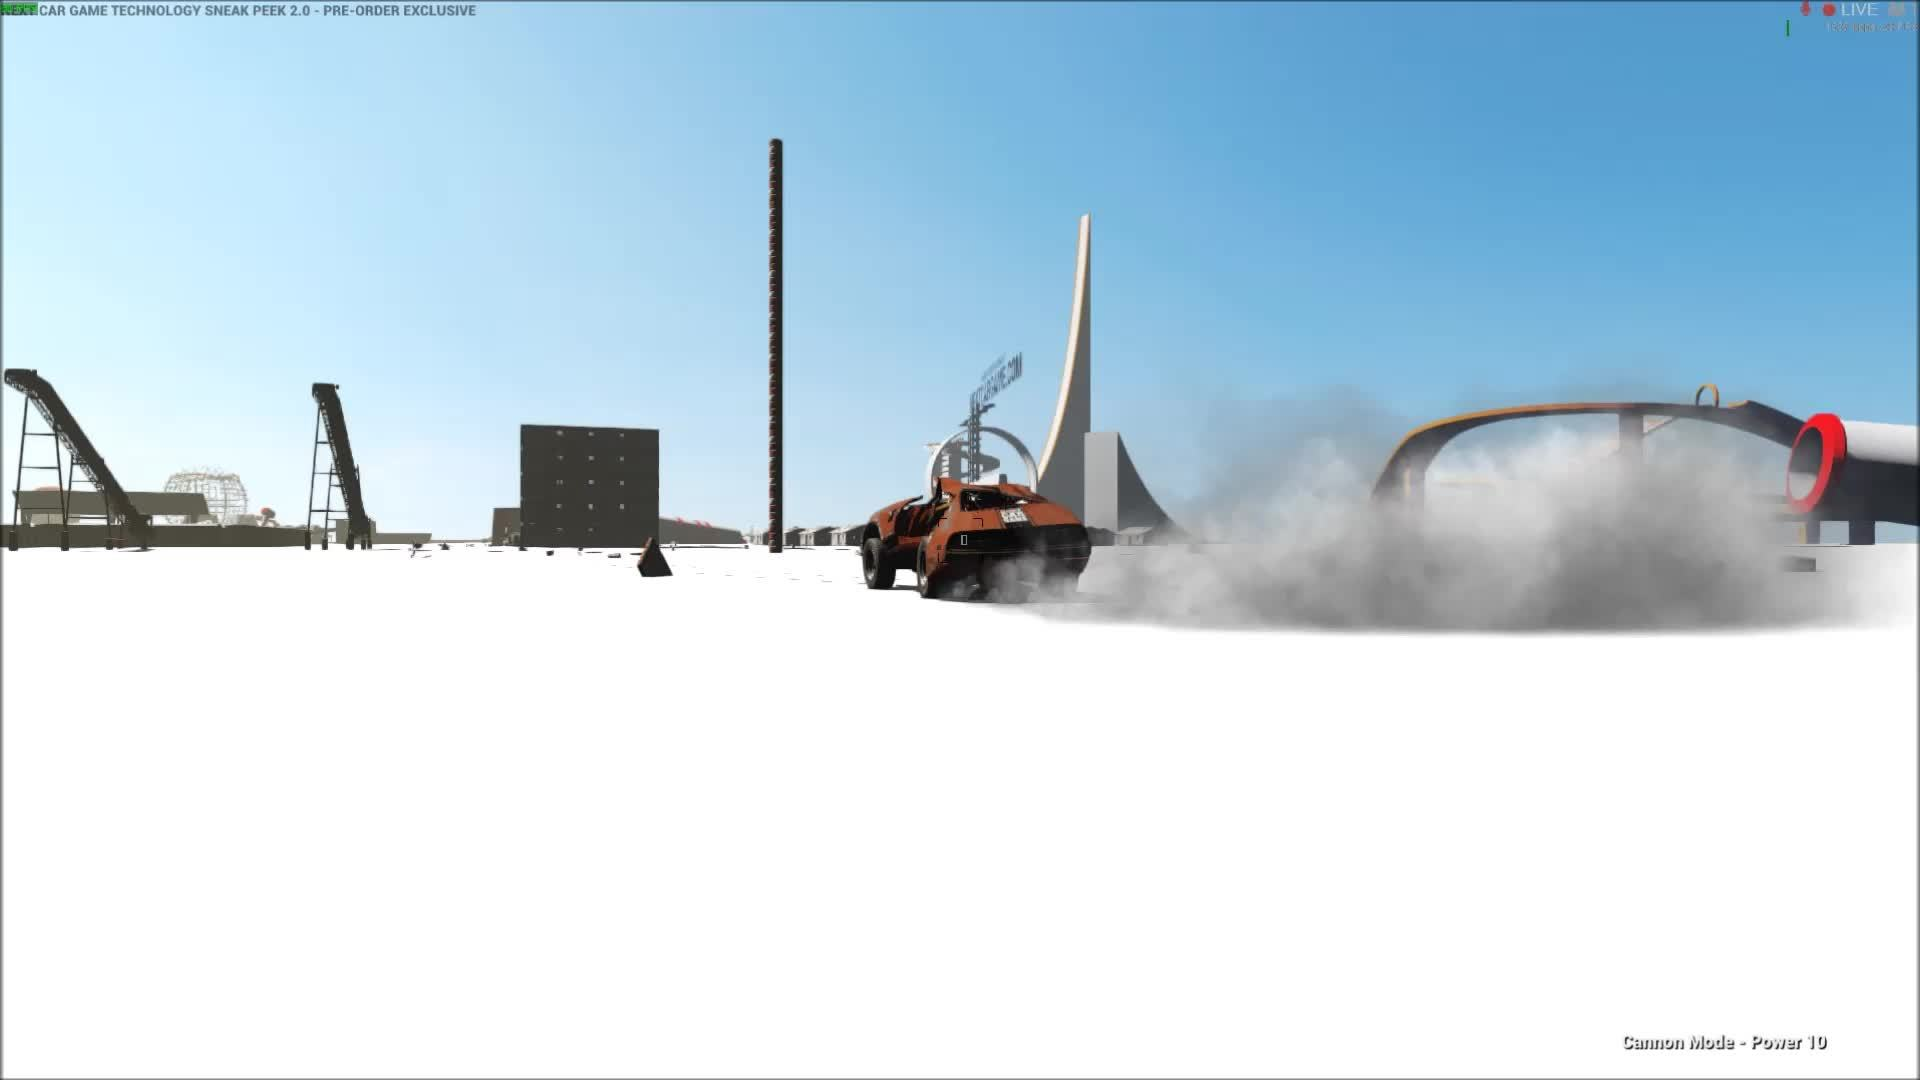 60fpsgaminggifs, [Wreckfest's Sneak Peak] Some of the things you can do with their Tech Demo. (That is a black hole) (reddit) GIFs